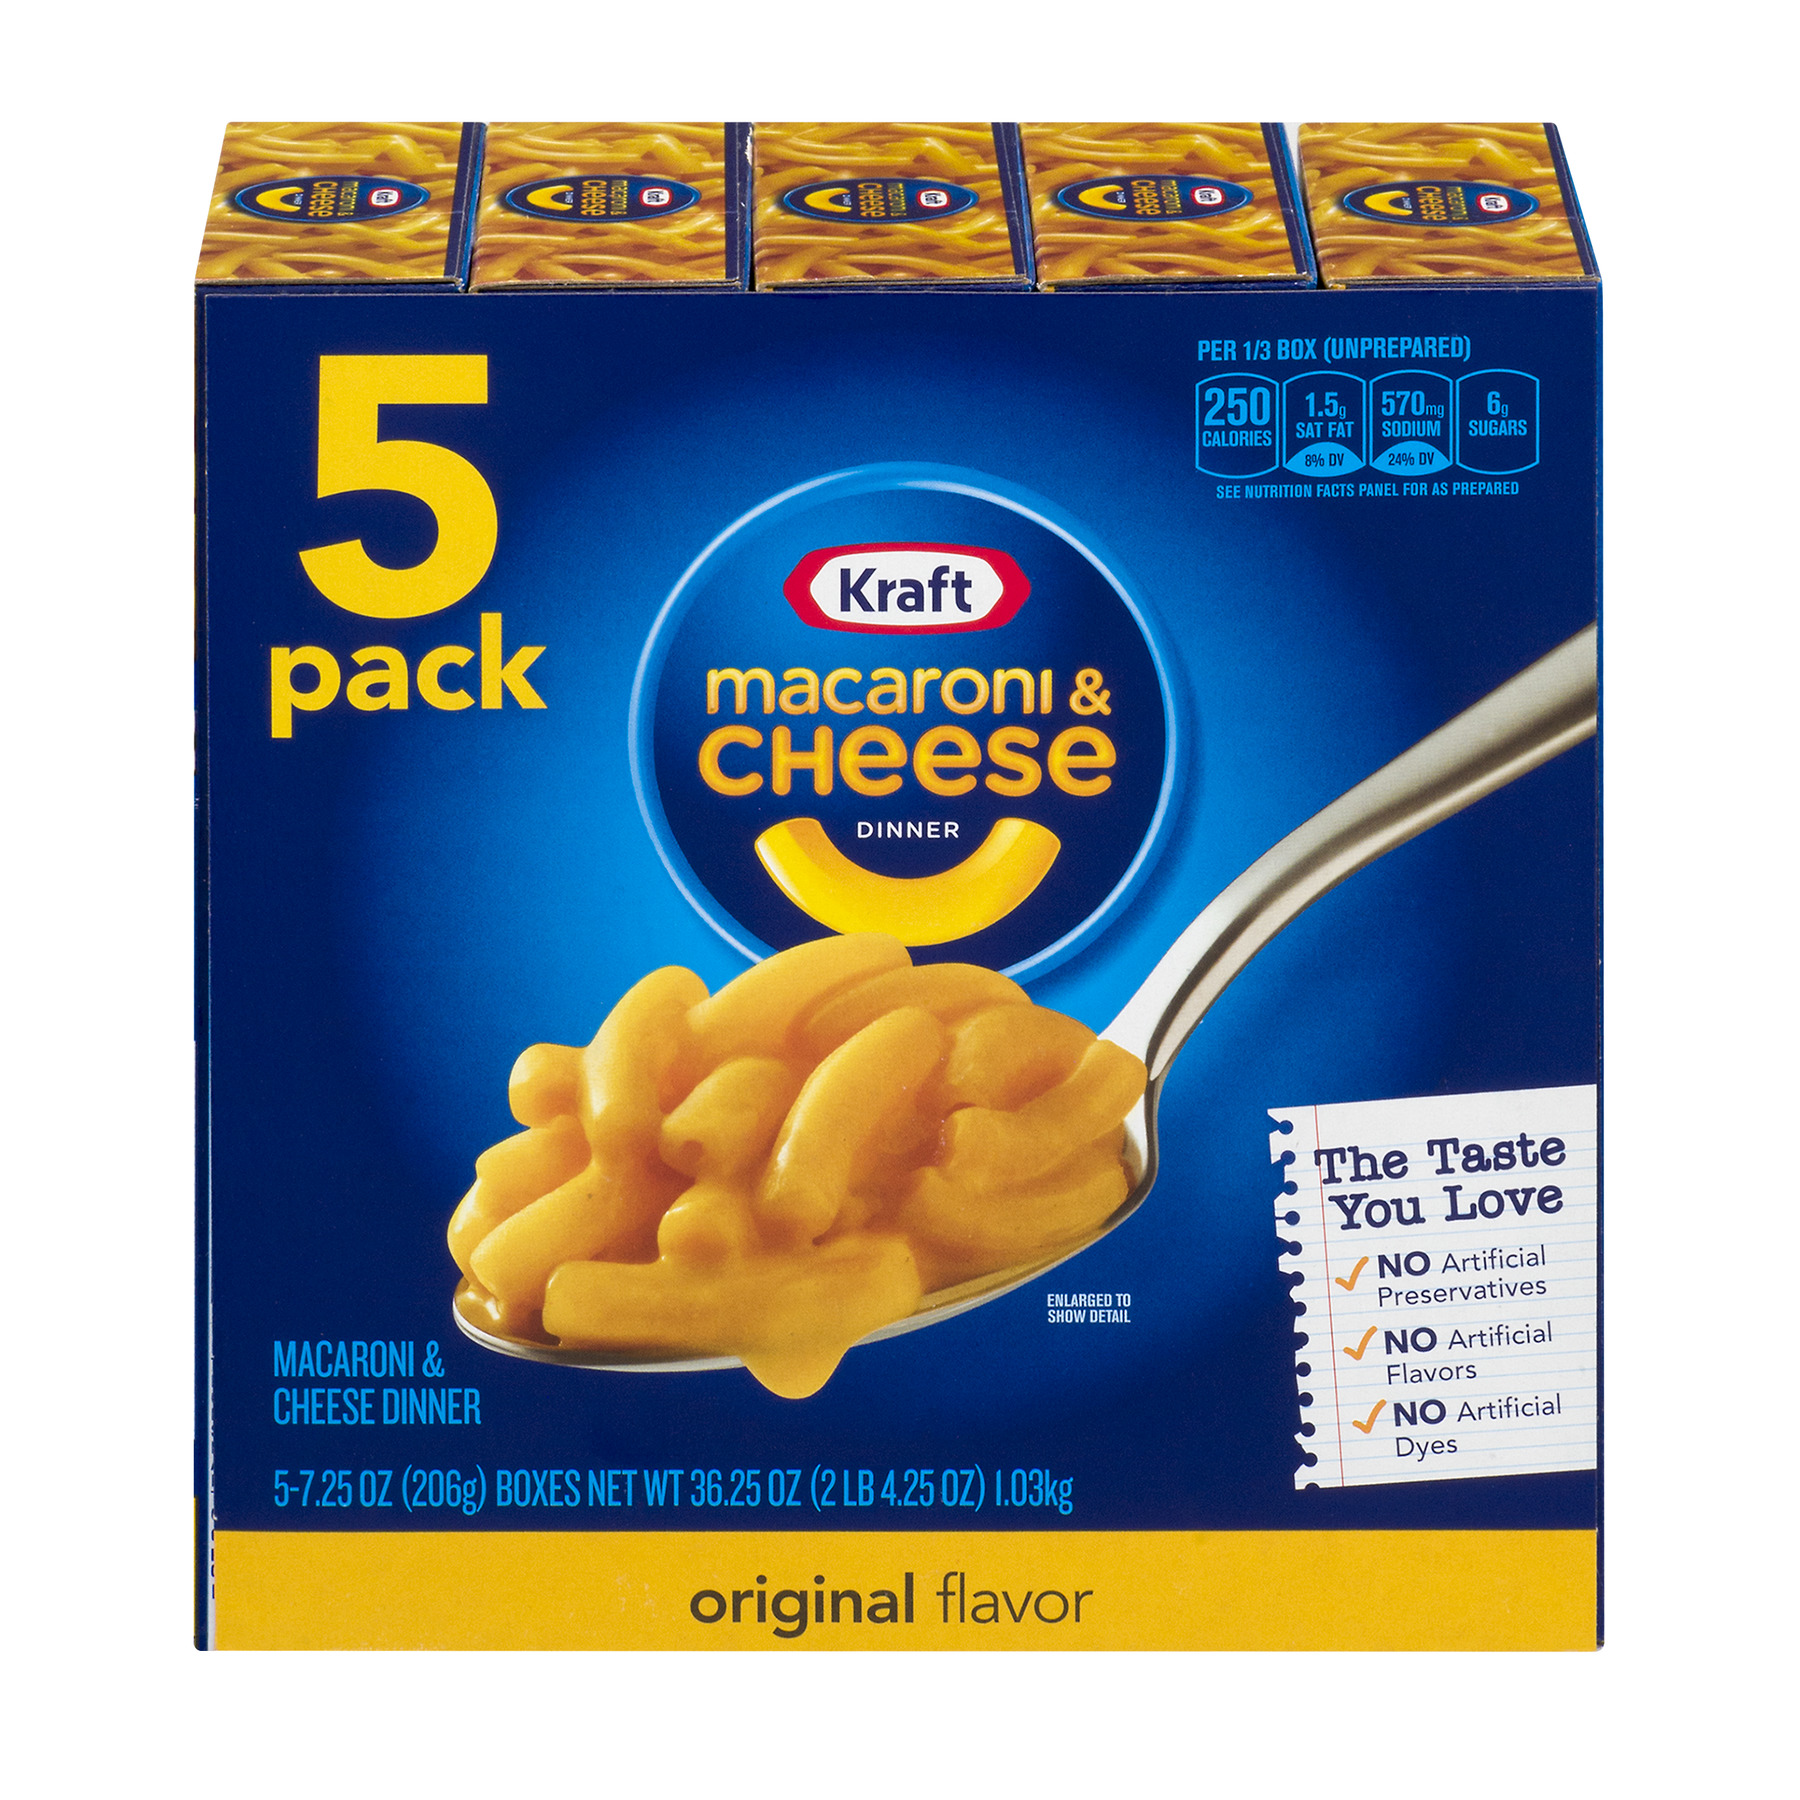 Kraft Macaroni & Cheese Dinner Original Flavor, 5 count , 36.25 oz